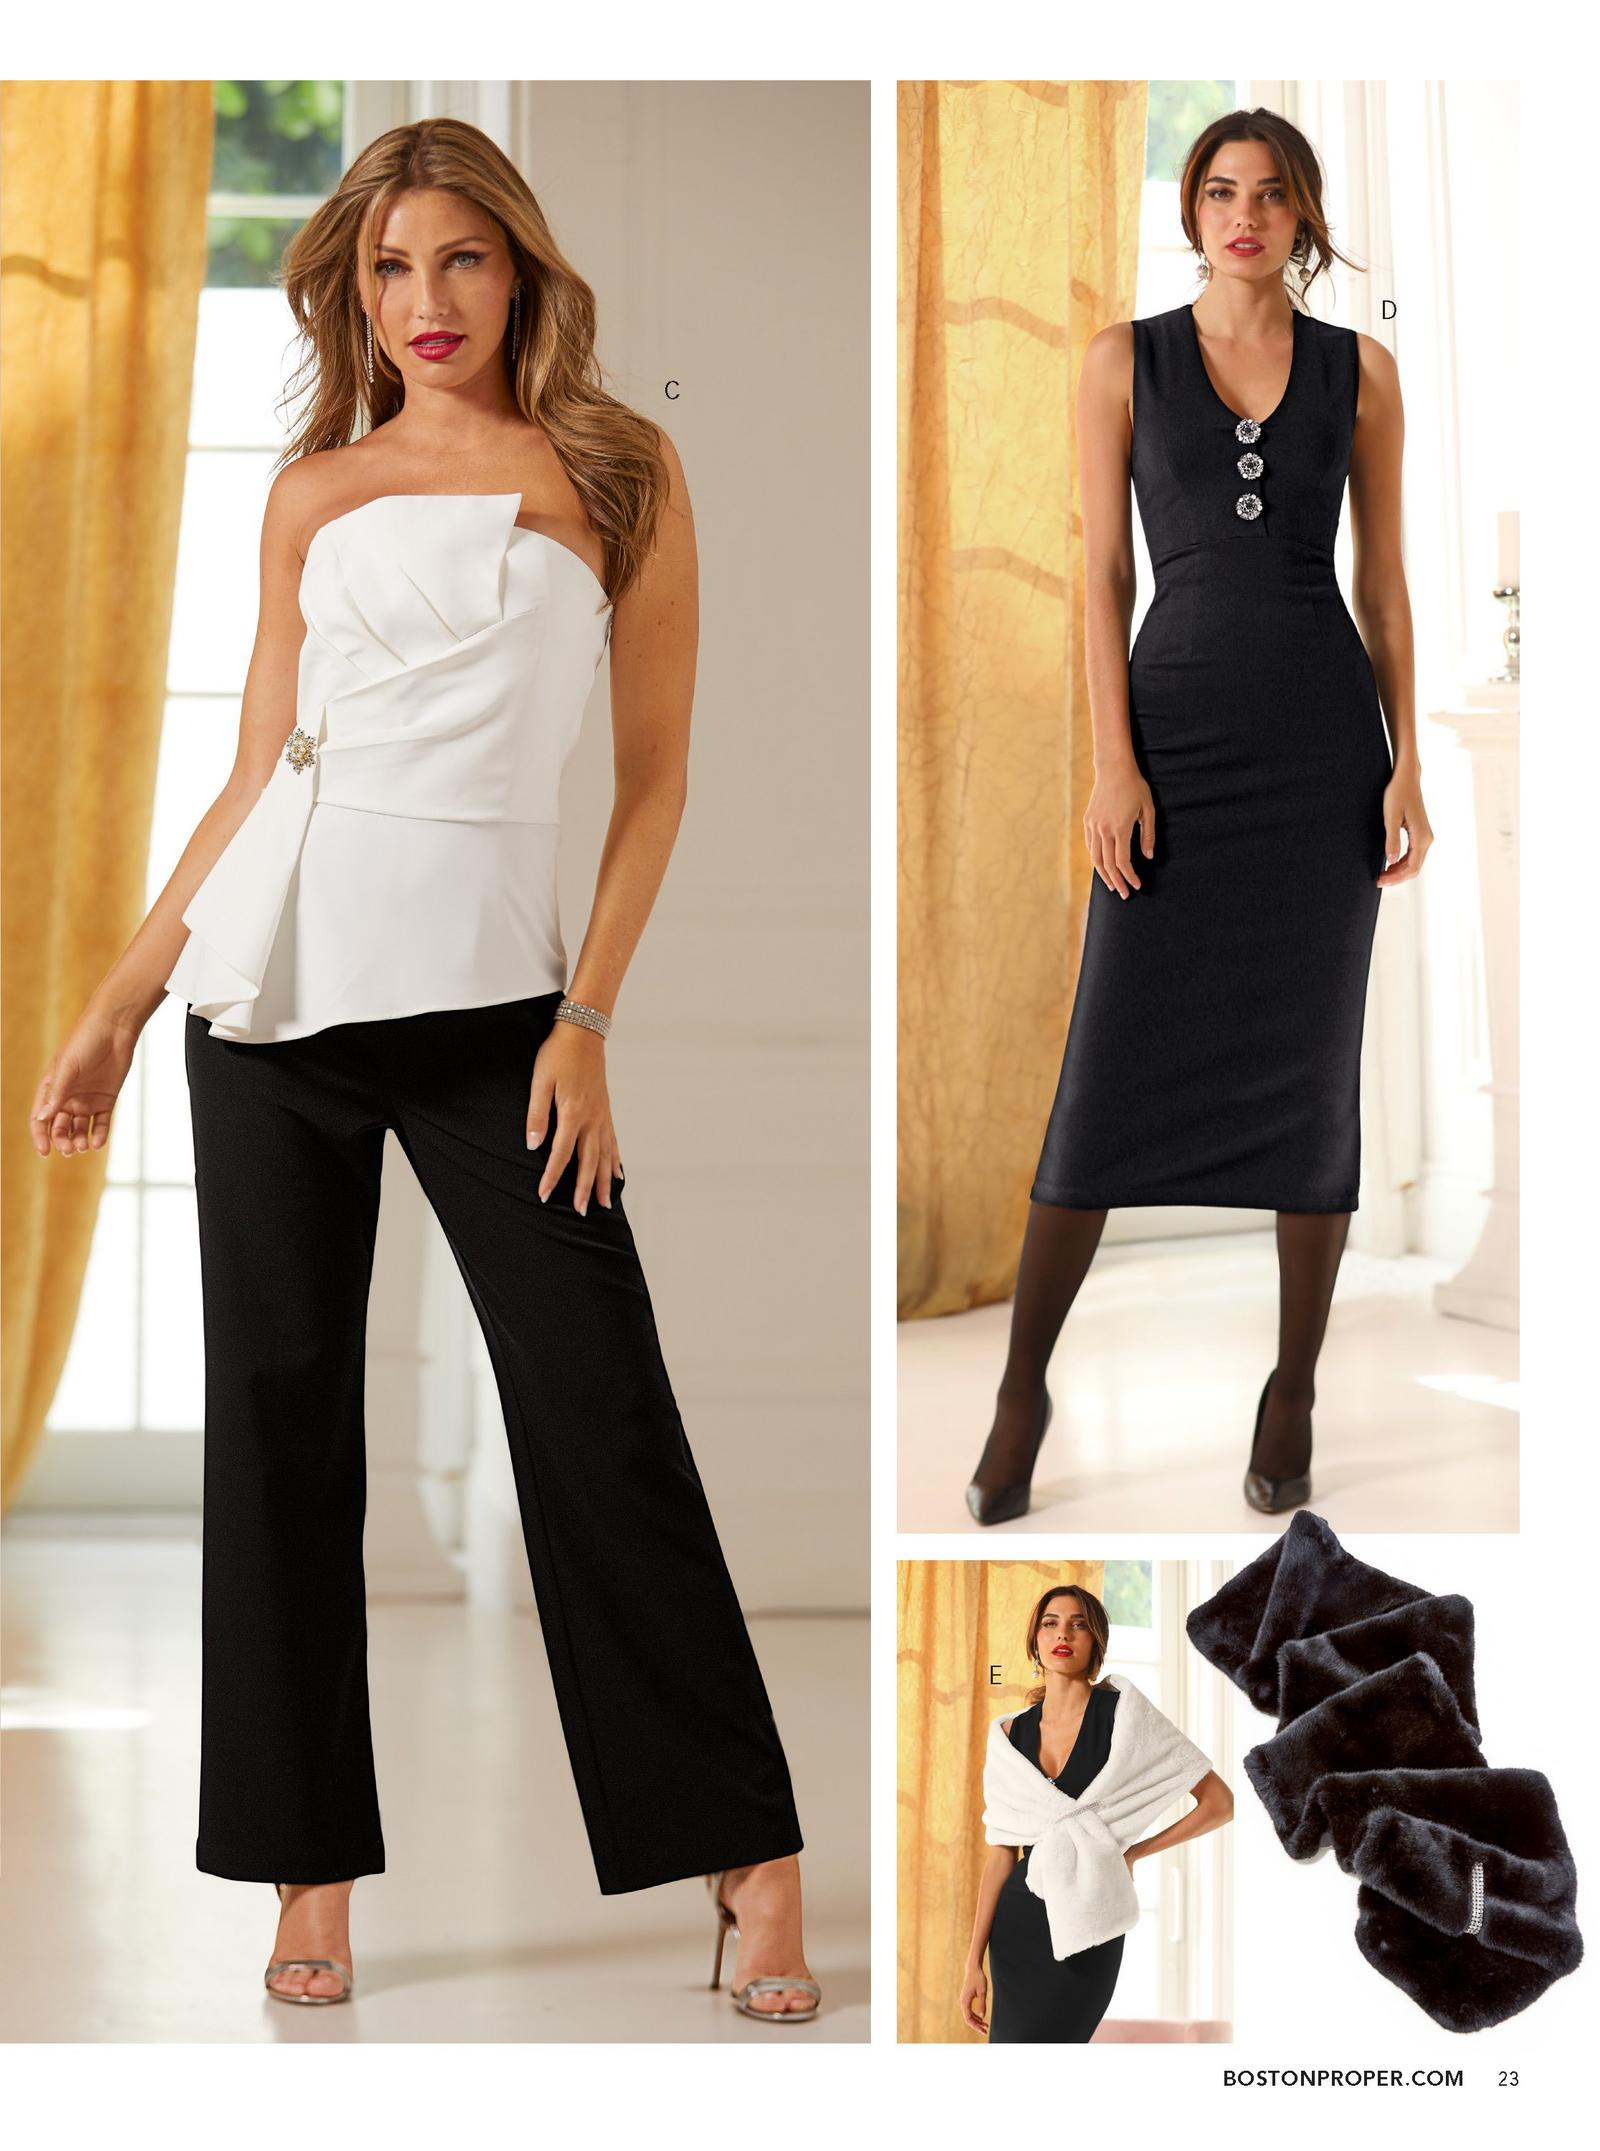 model wearing black and white sleeveless jumpsuit. right model wearing a black v-neck dress with brooch buttons.